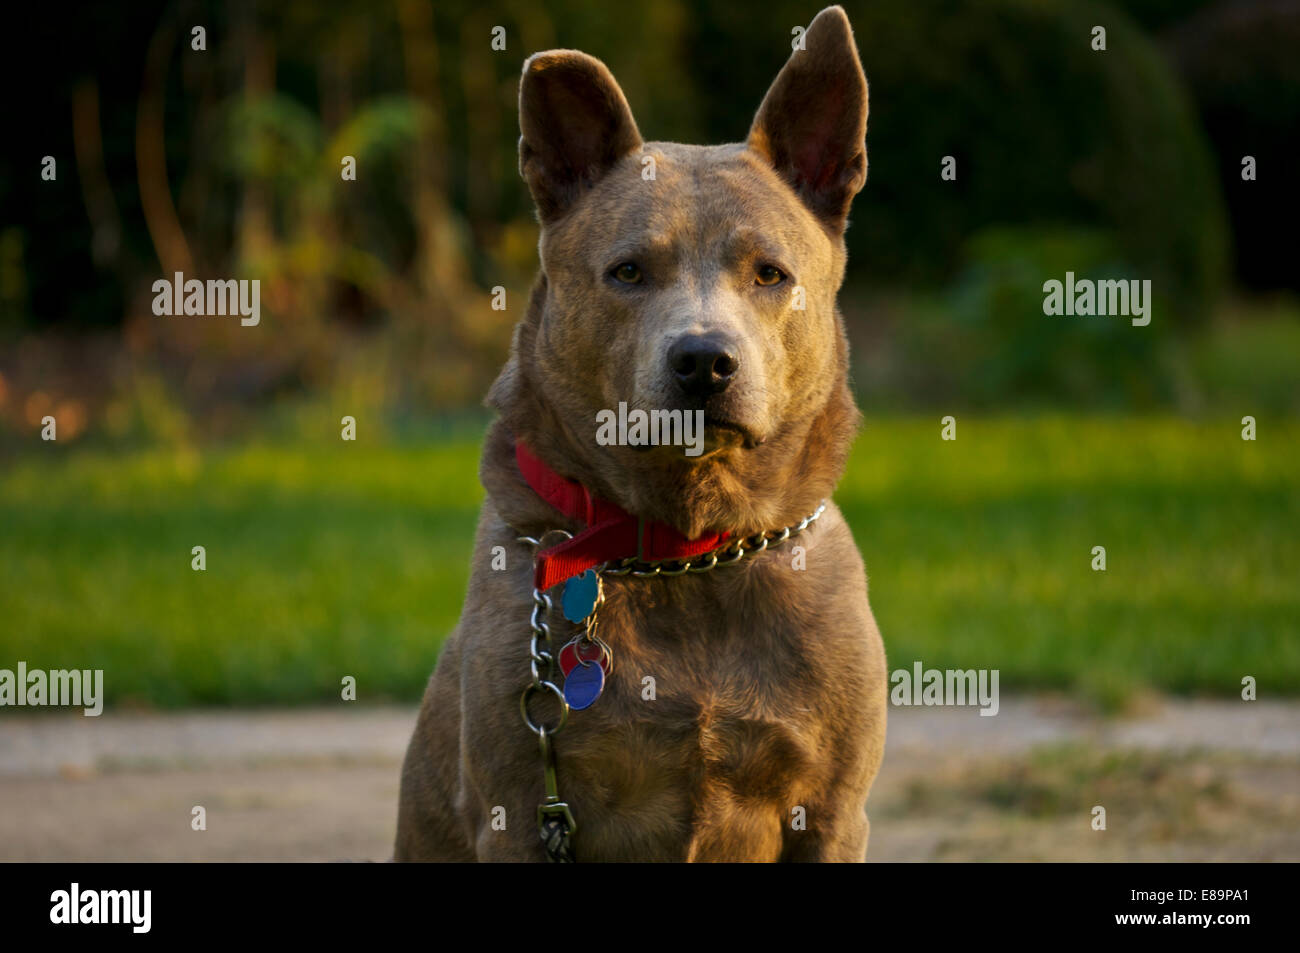 Dog sitting looking straight into the camera with a grass background - Stock Image